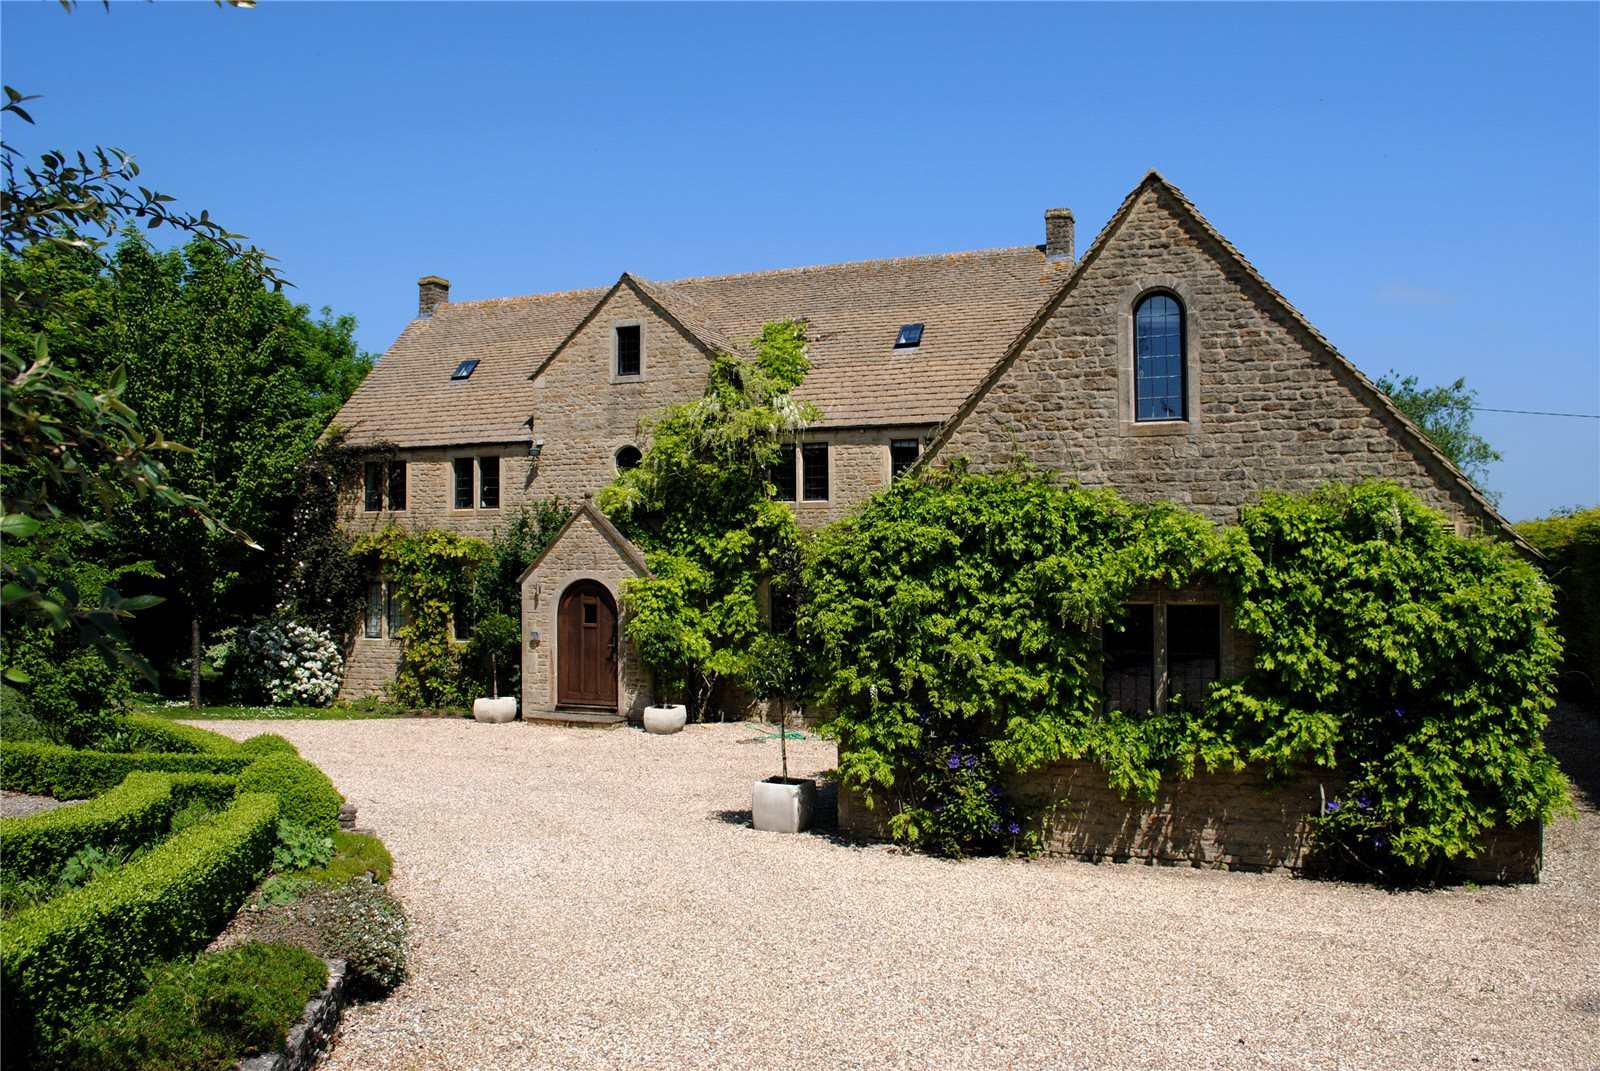 独户住宅 为 销售 在 Fields Road, Chedworth, Cheltenham, Gloucestershire, GL54 Cheltenham, 英格兰